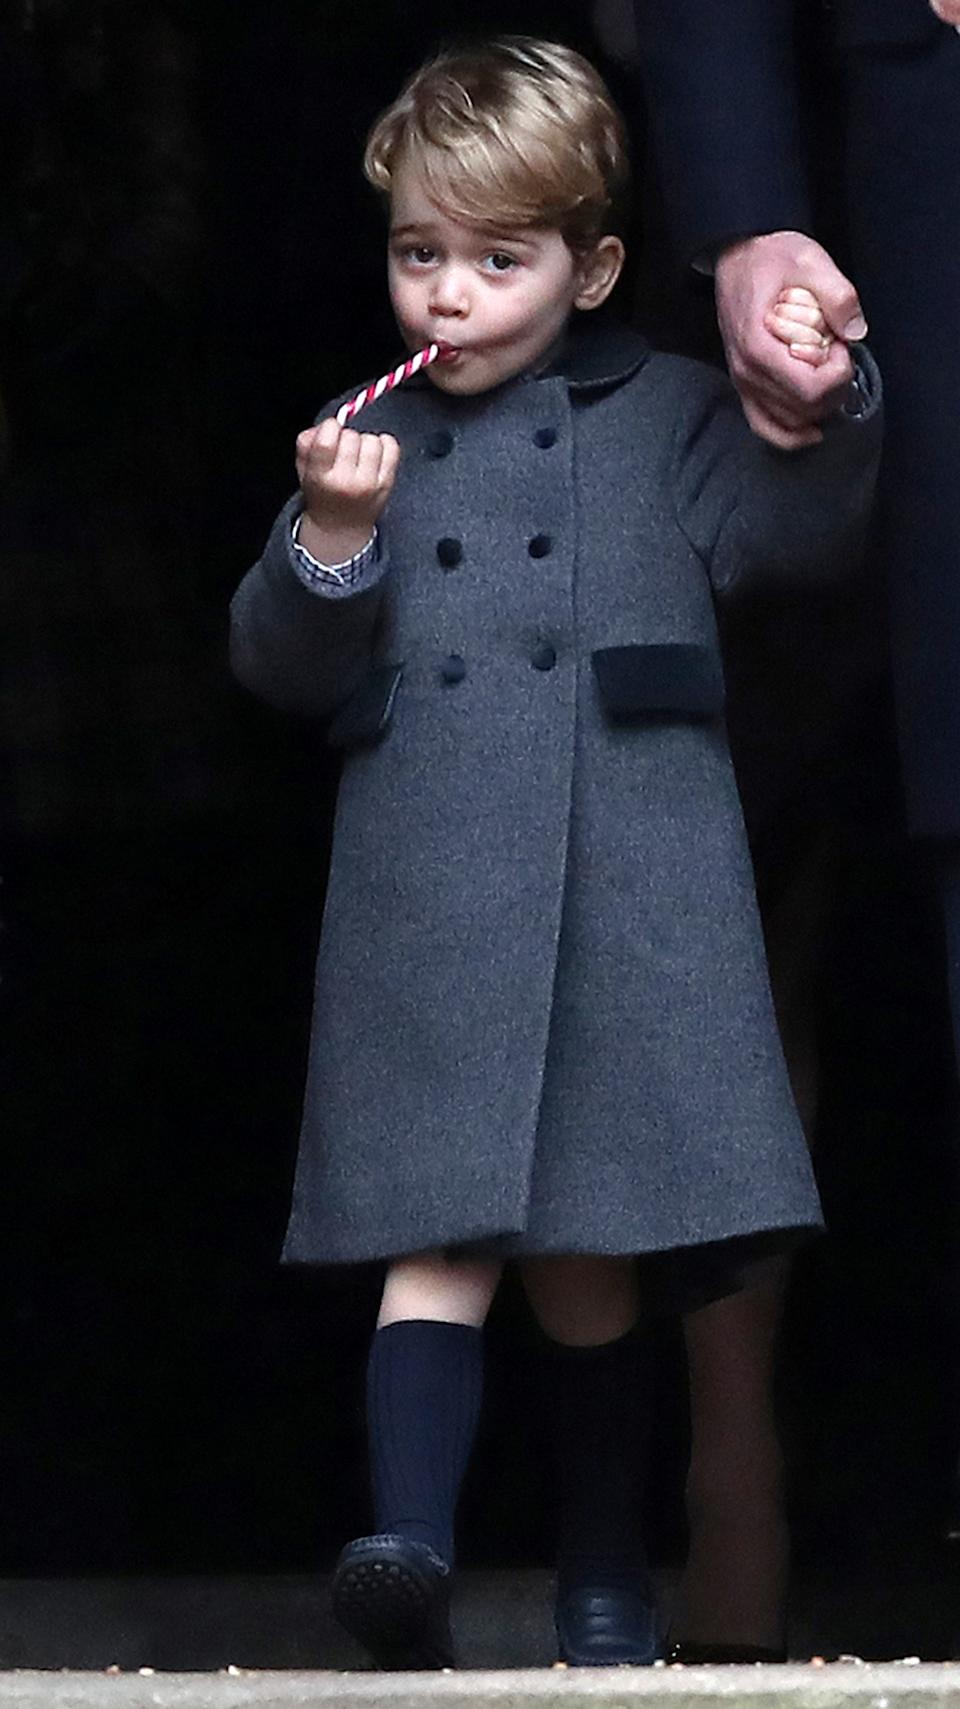 Prince George, the son of the Duke and Duchess of Cambridge, sucks a sweet as he leaves following the morning Christmas Day service at St Mark's Church in Englefield, near Bucklebury in southern England, Britain, December 25, 2016. REUTERS/Andrew Matthews/Pool